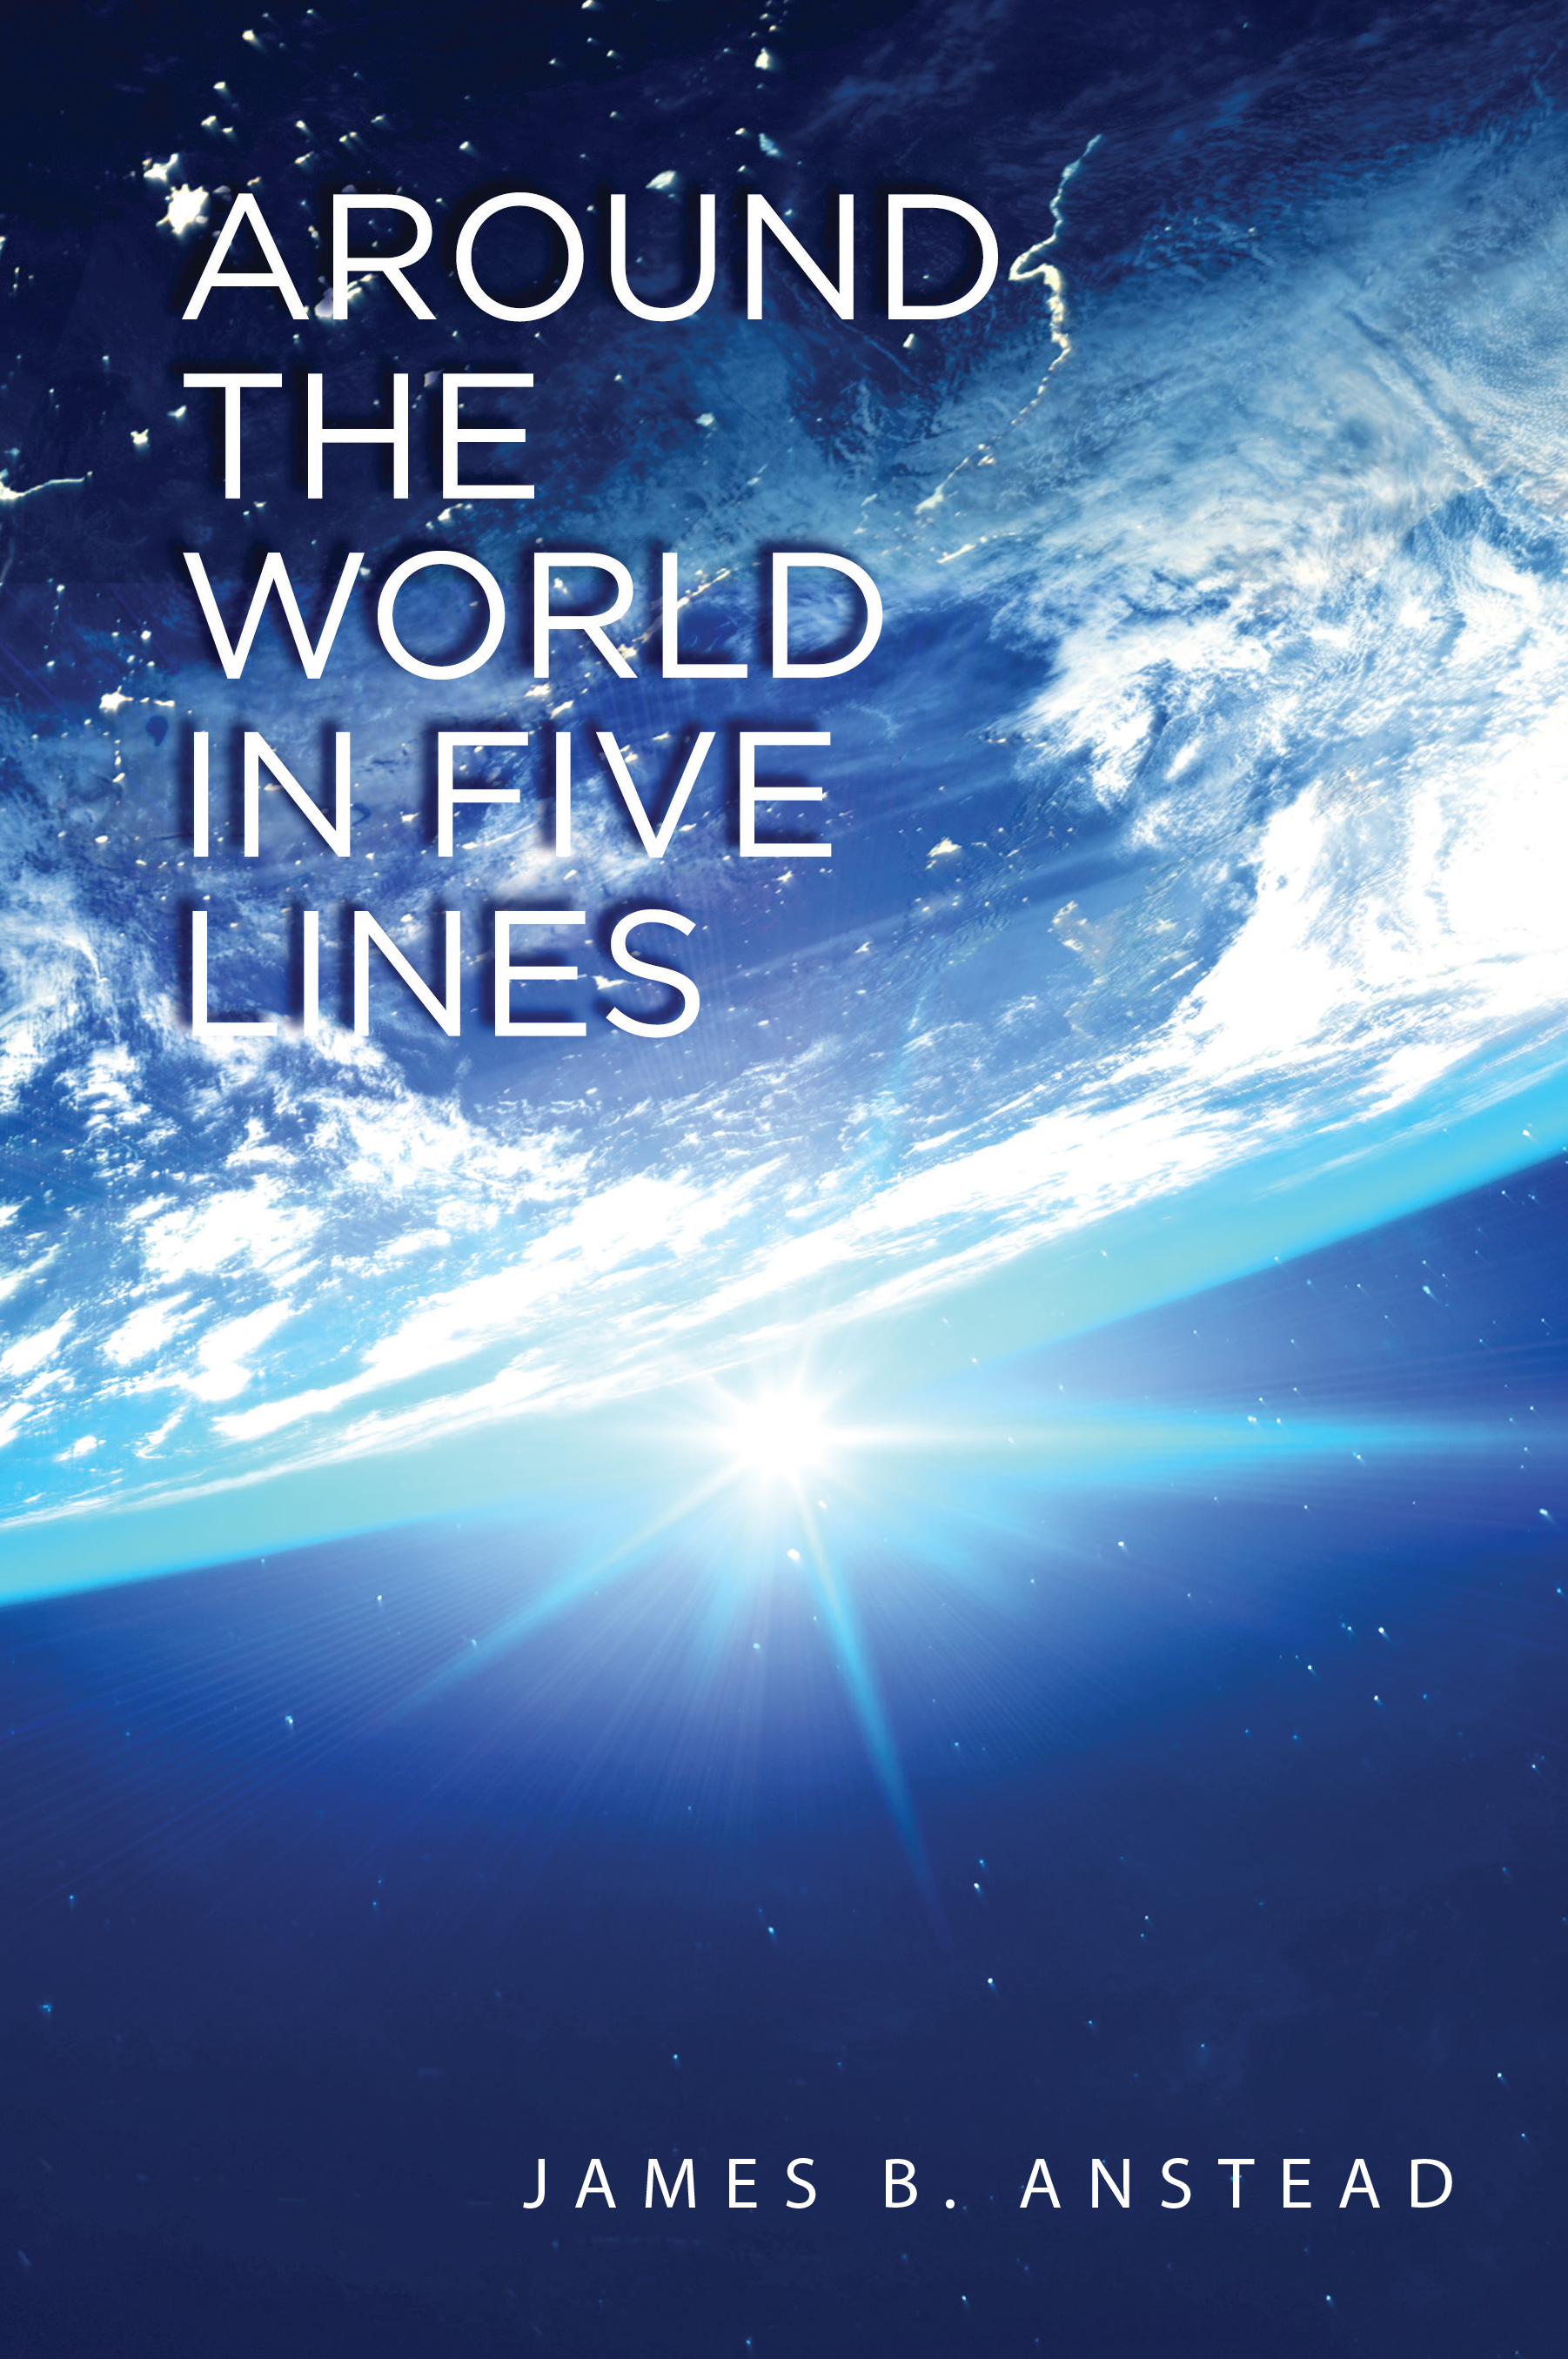 Around the World in Five Lines by Author James B. Anstead